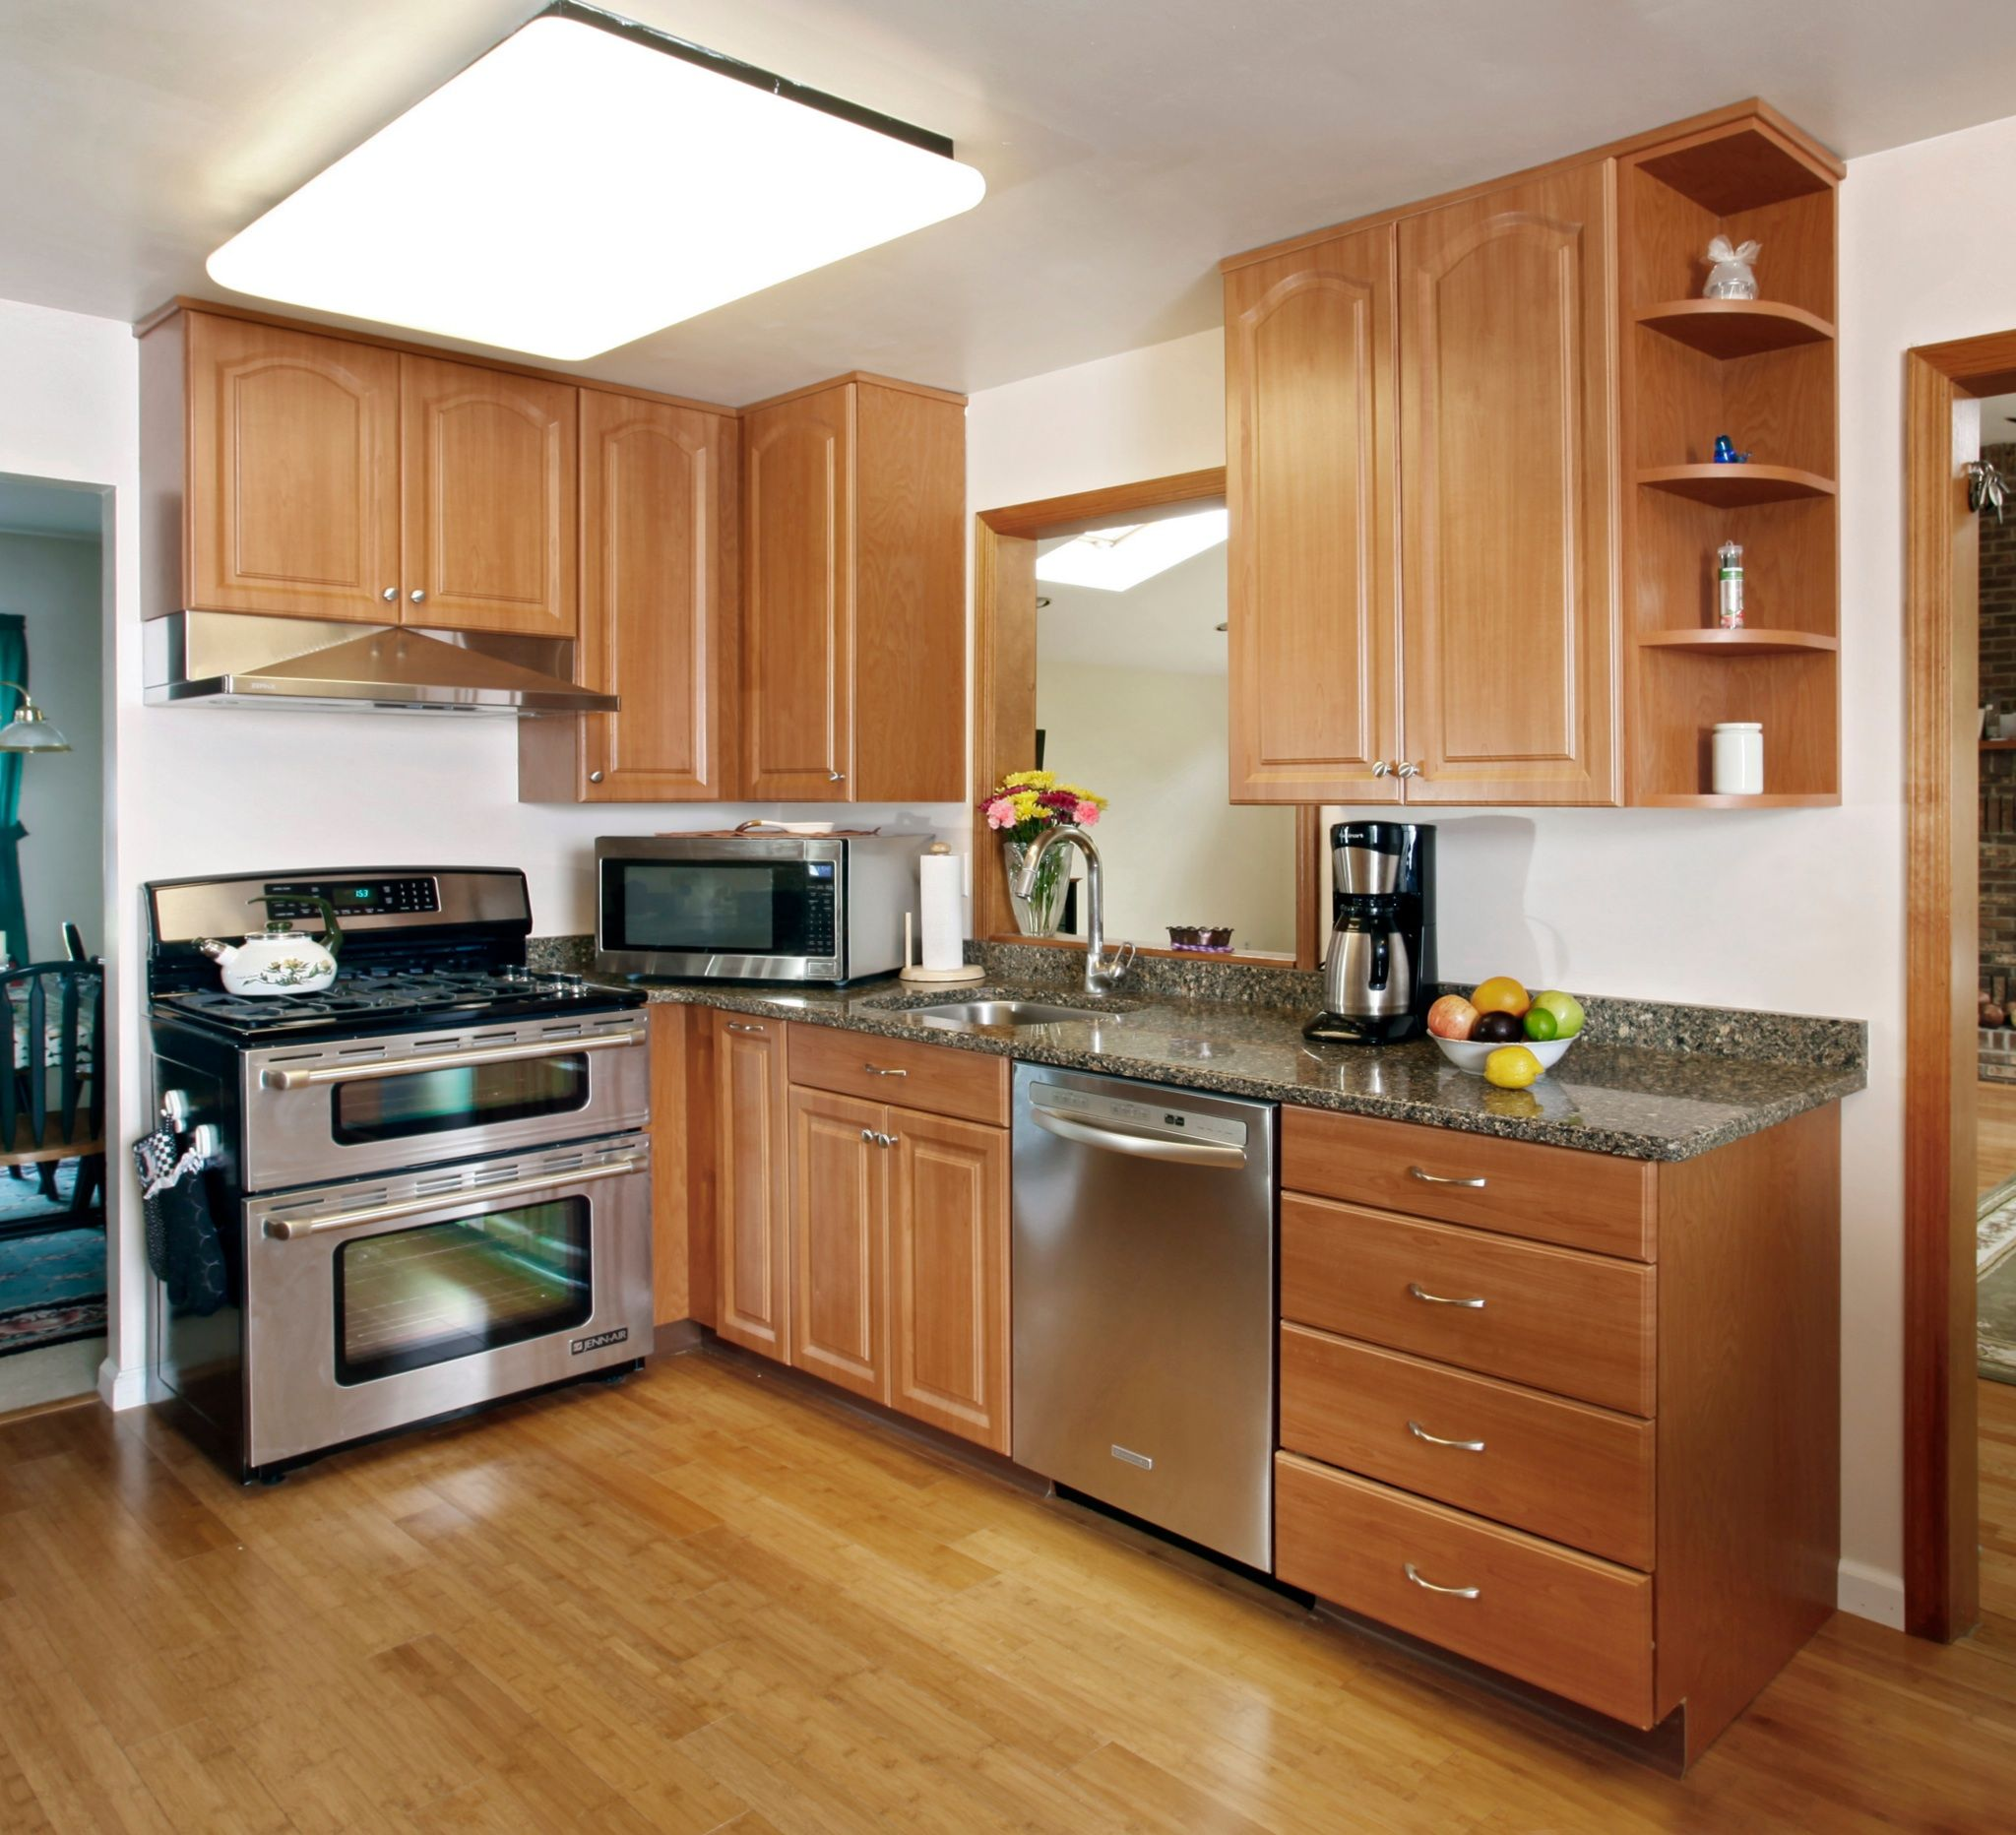 Oak Cabinets Kitchen Island Designs: Kitchen:Quartz Countertops With Oak Cabinets Kitchen With